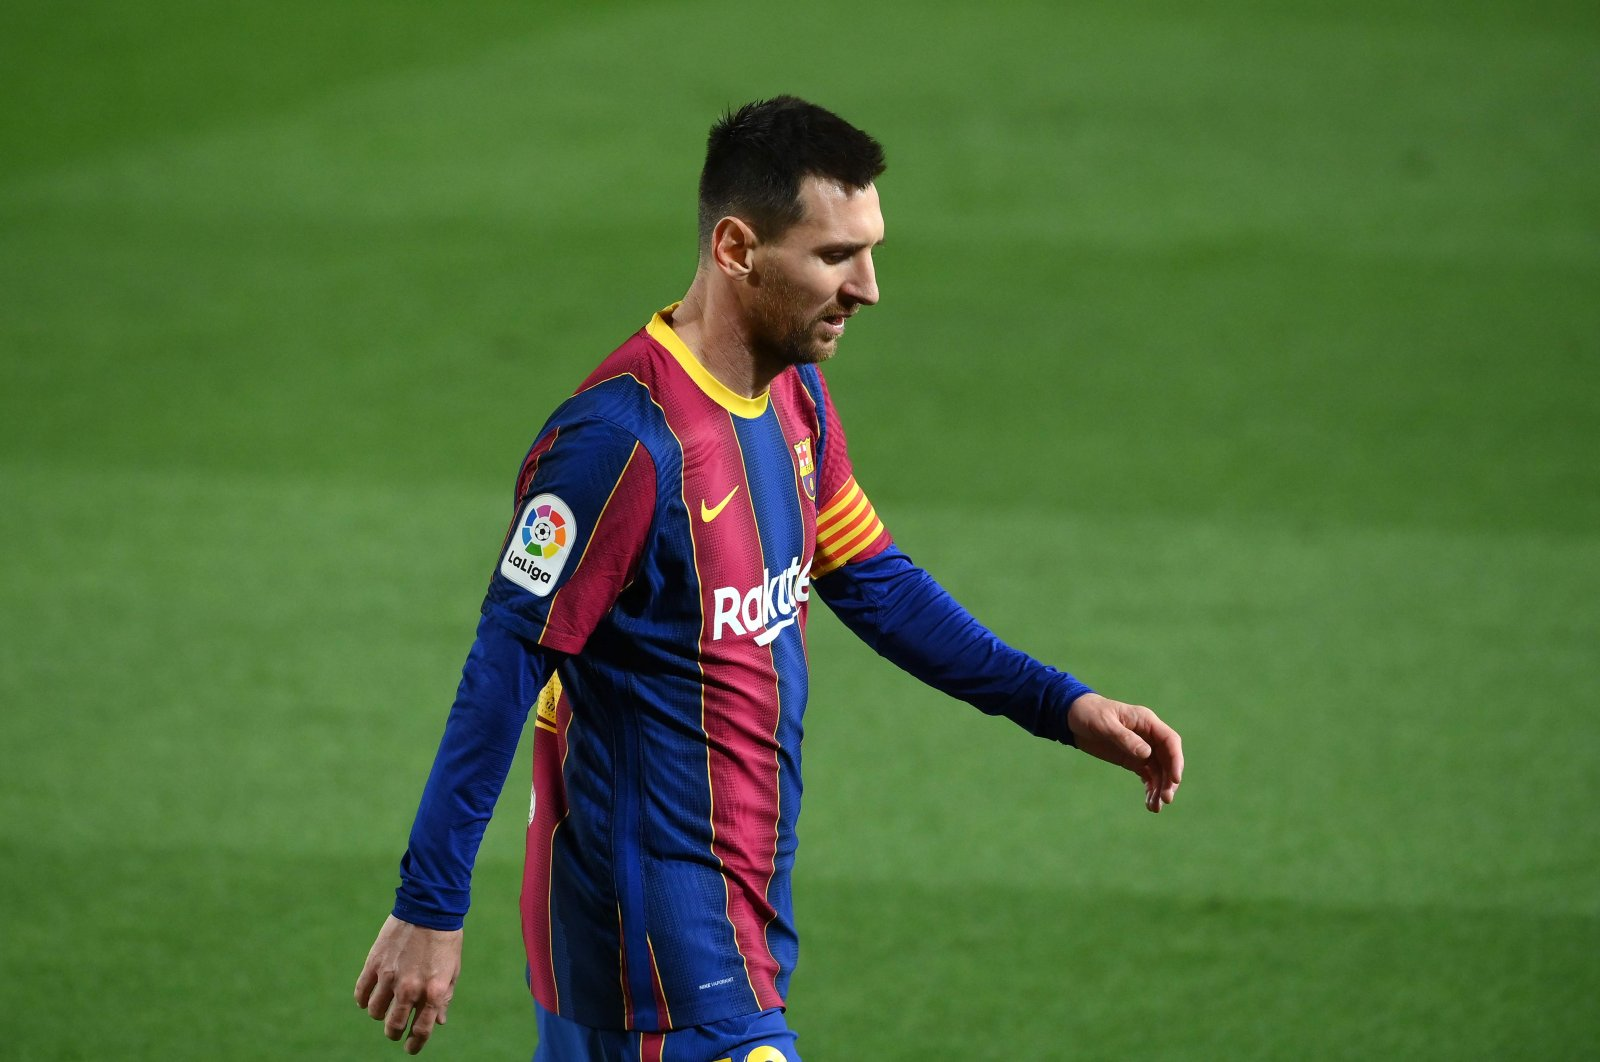 Barcelona forward Lionel Messi during a match against Athletic Club Bilbao at the Camp Nou, Barcelona, Jan. 31, 2021. (AFP Photo)